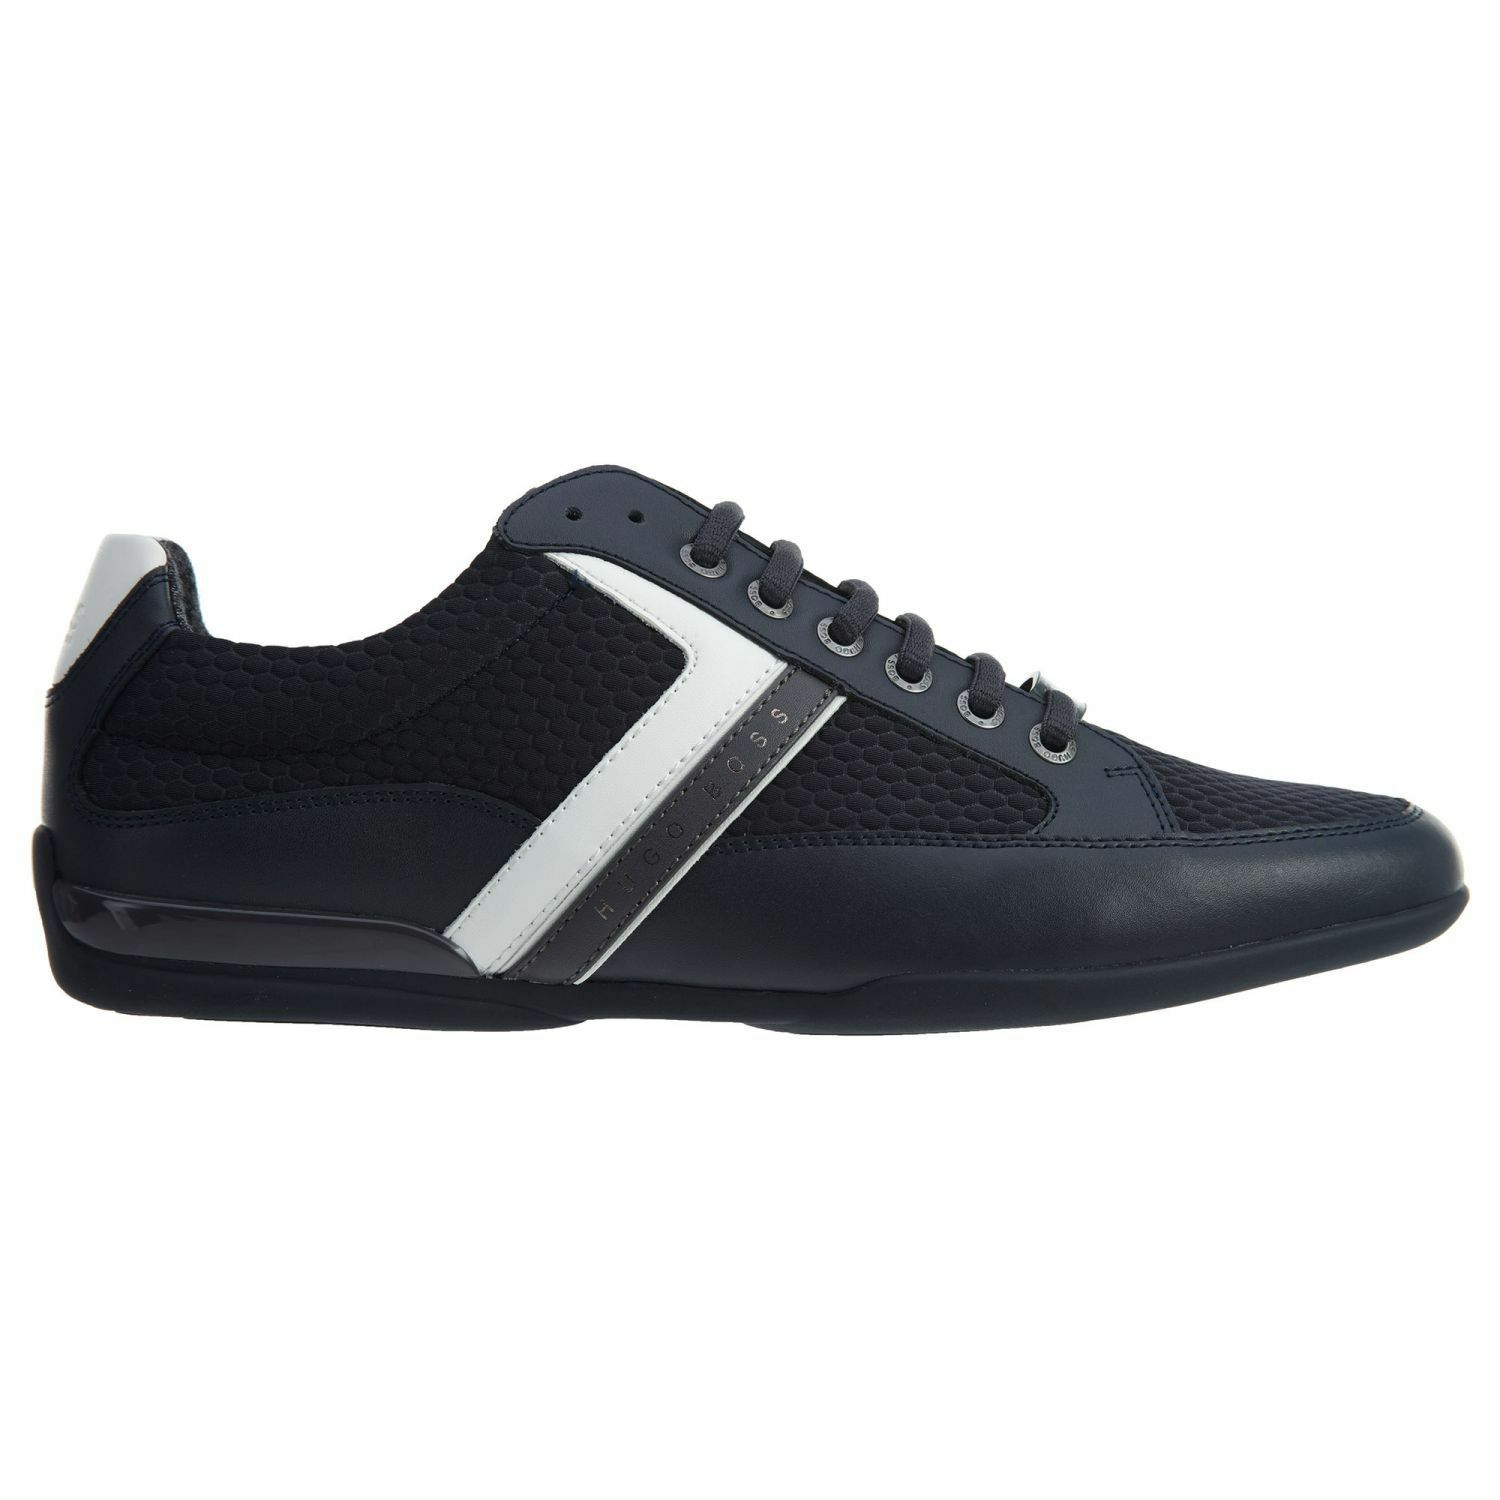 Hugo Boss Space Low Mens 50374603-401 Dark bluee Leather Mesh shoes Size 13